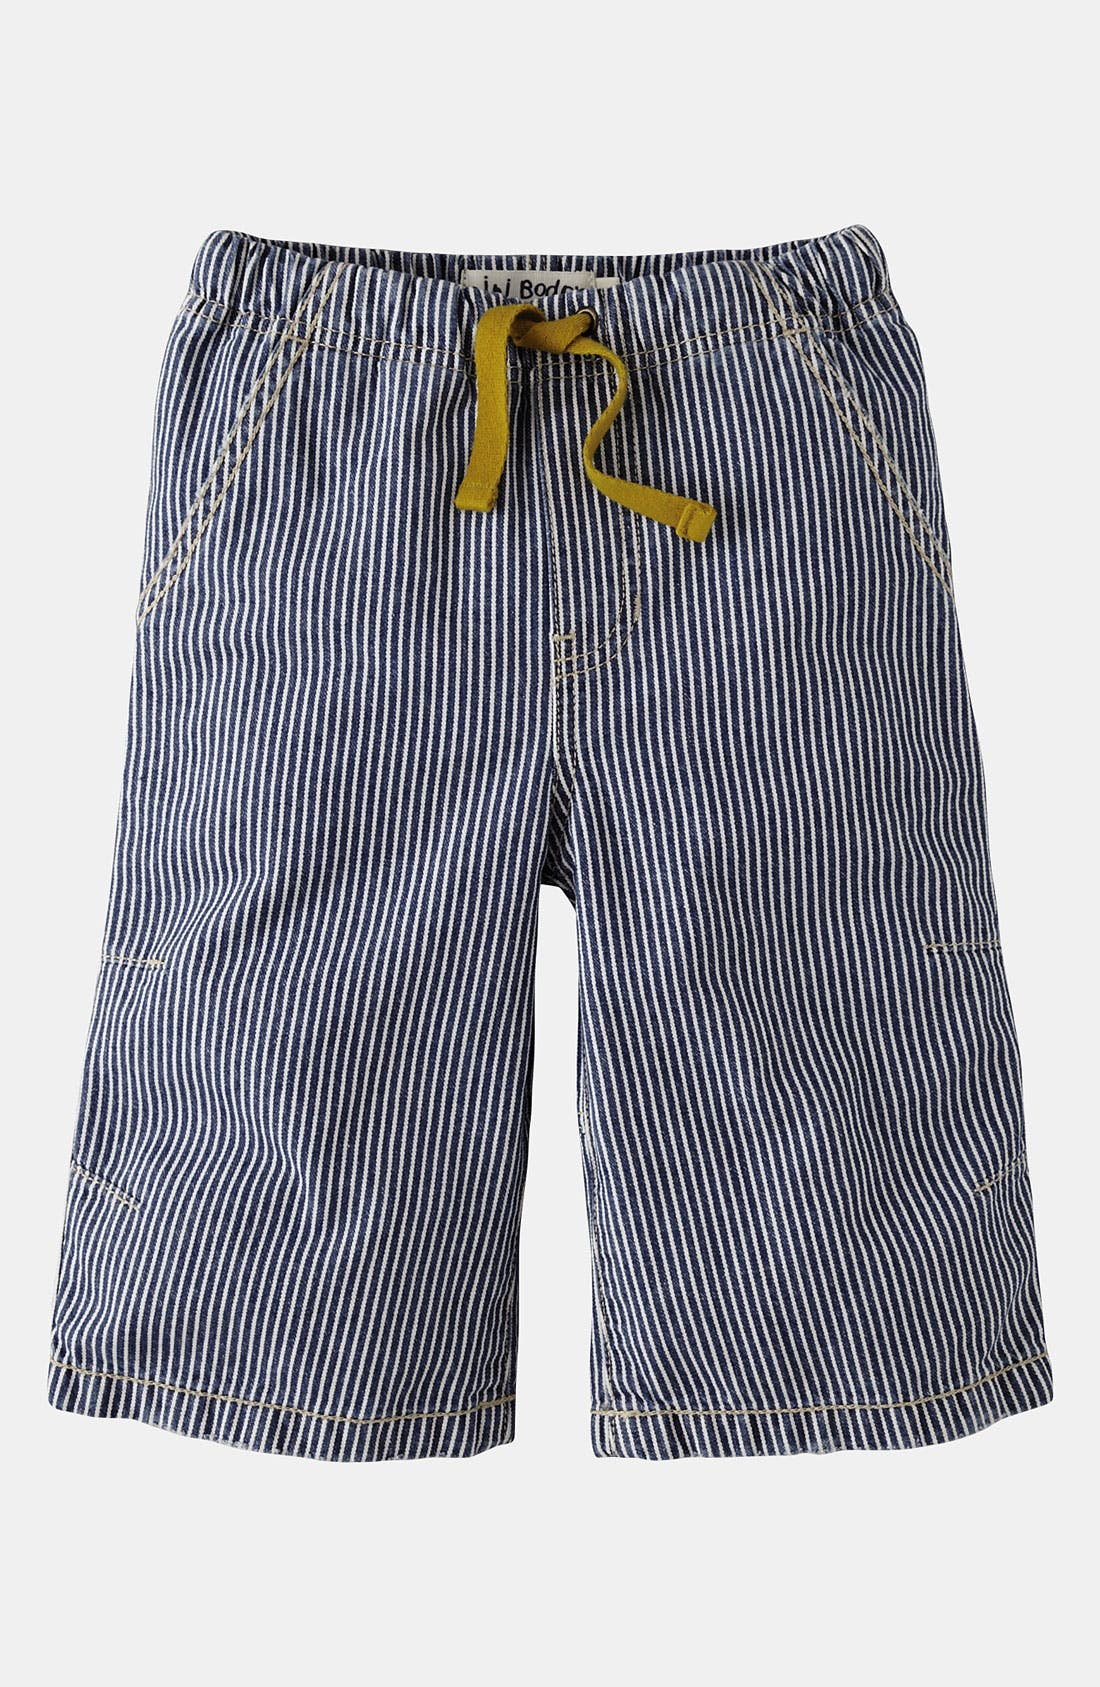 Main Image - Mini Boden Board Shorts (Little Boys & Big Boys)